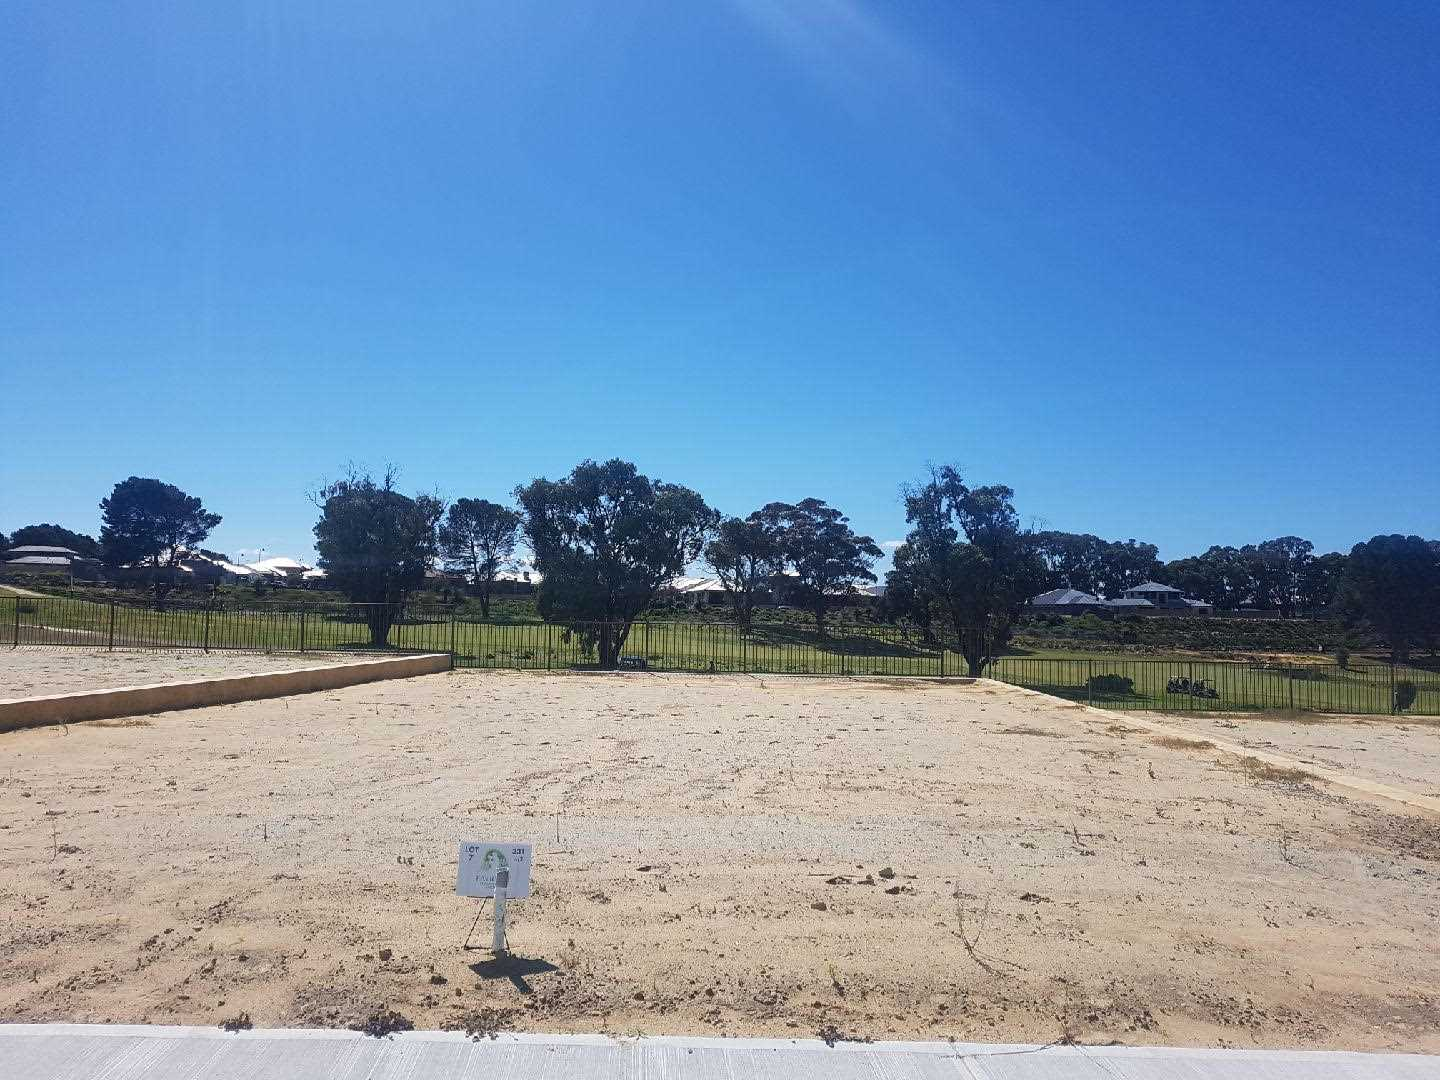 Lot 7 331m2 with 13.3m2 frontage